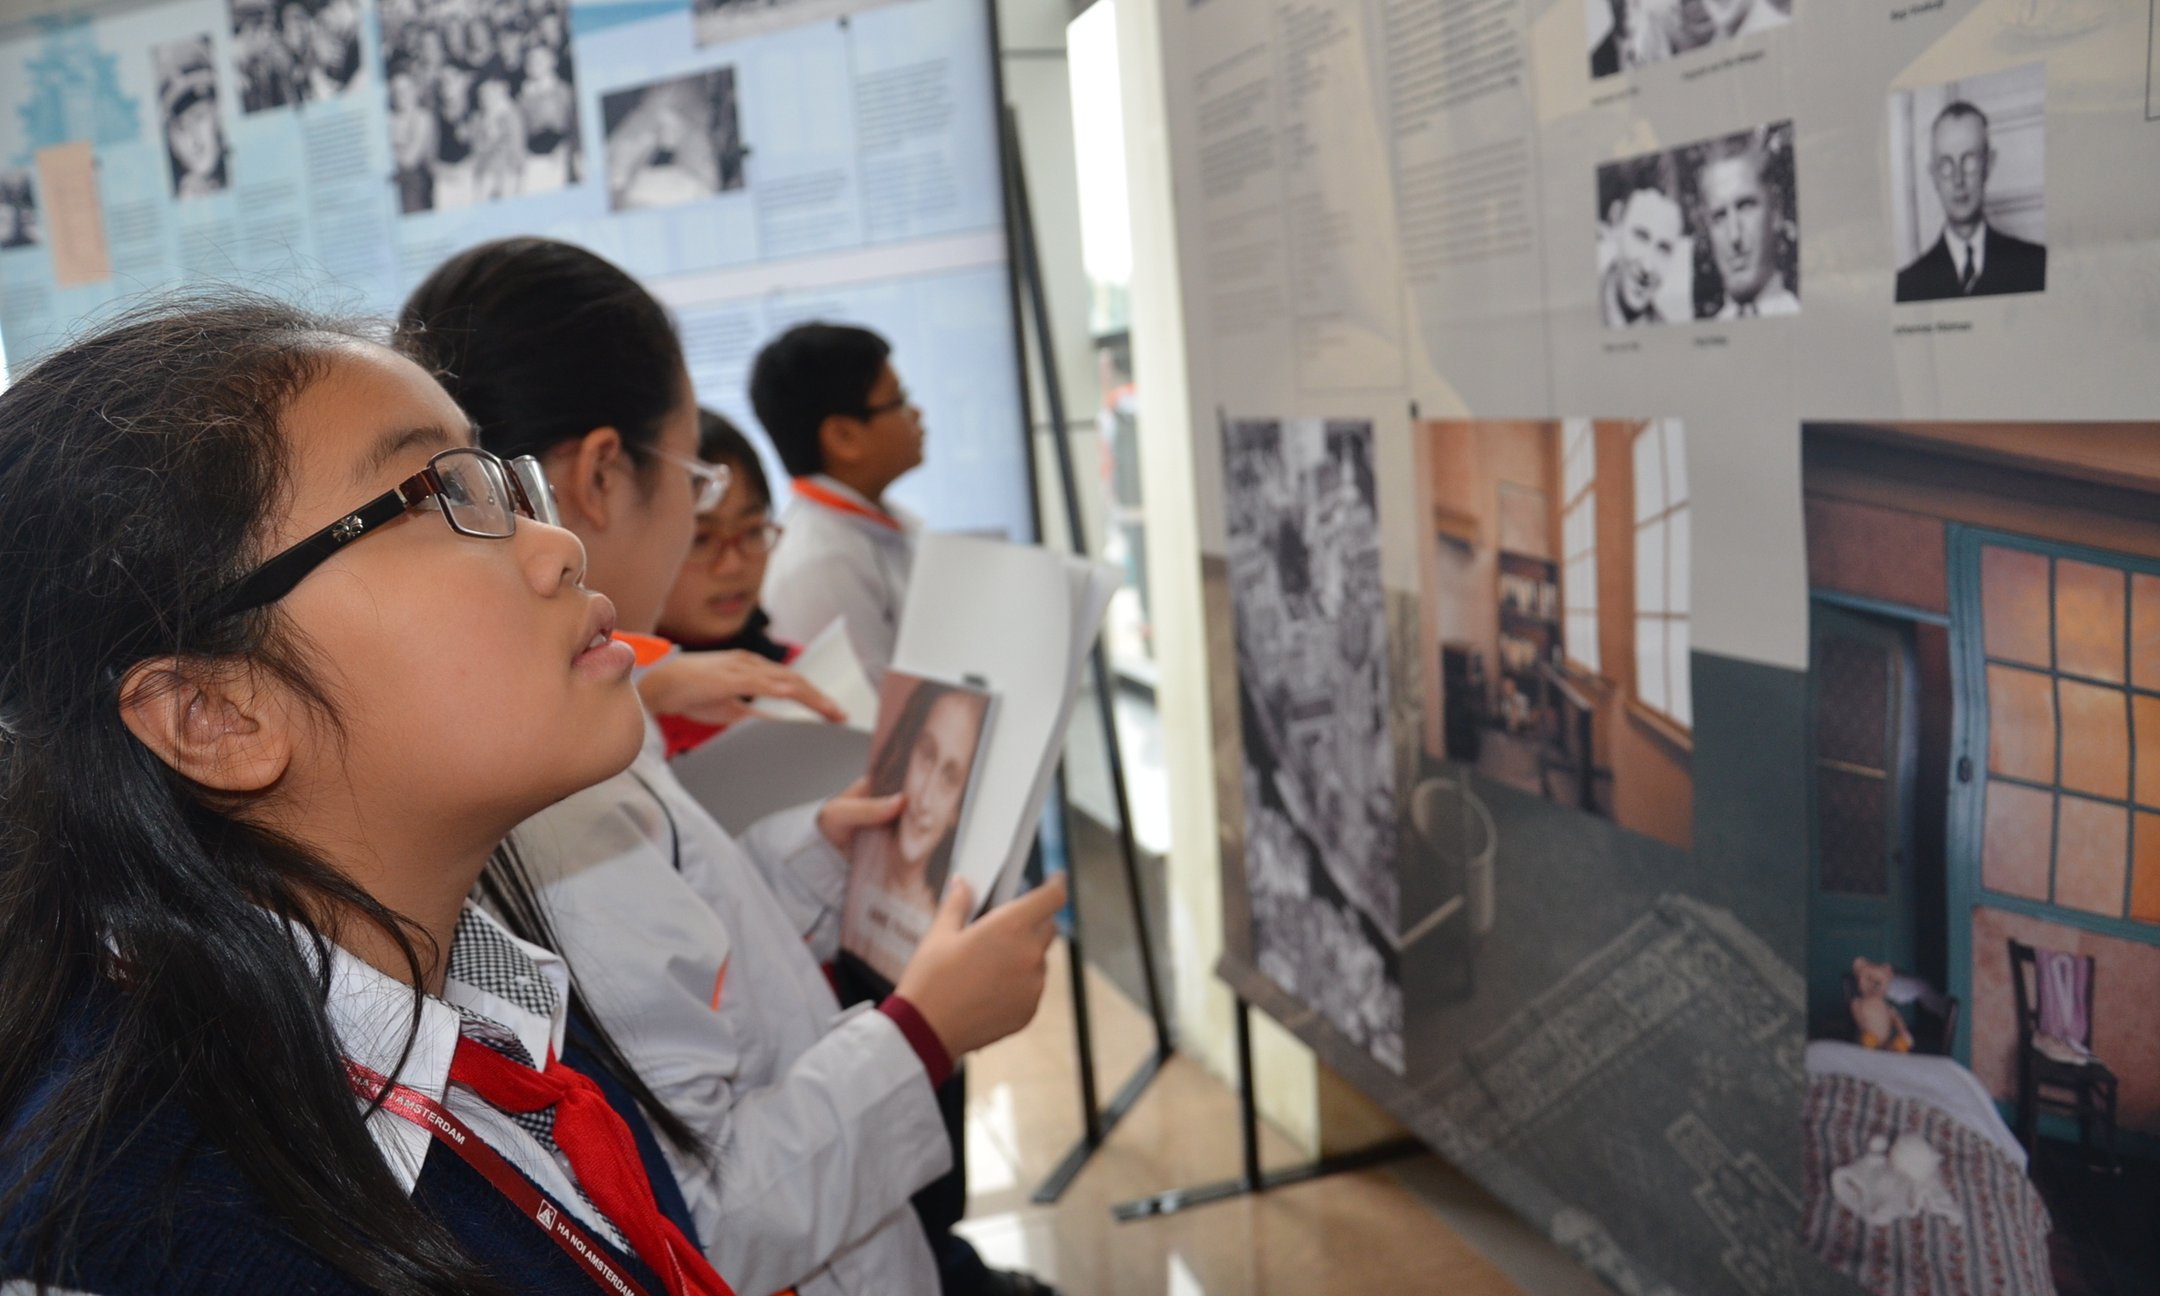 Exhibition 'Anne Frank a History for today' in Hanoi, Vietnam